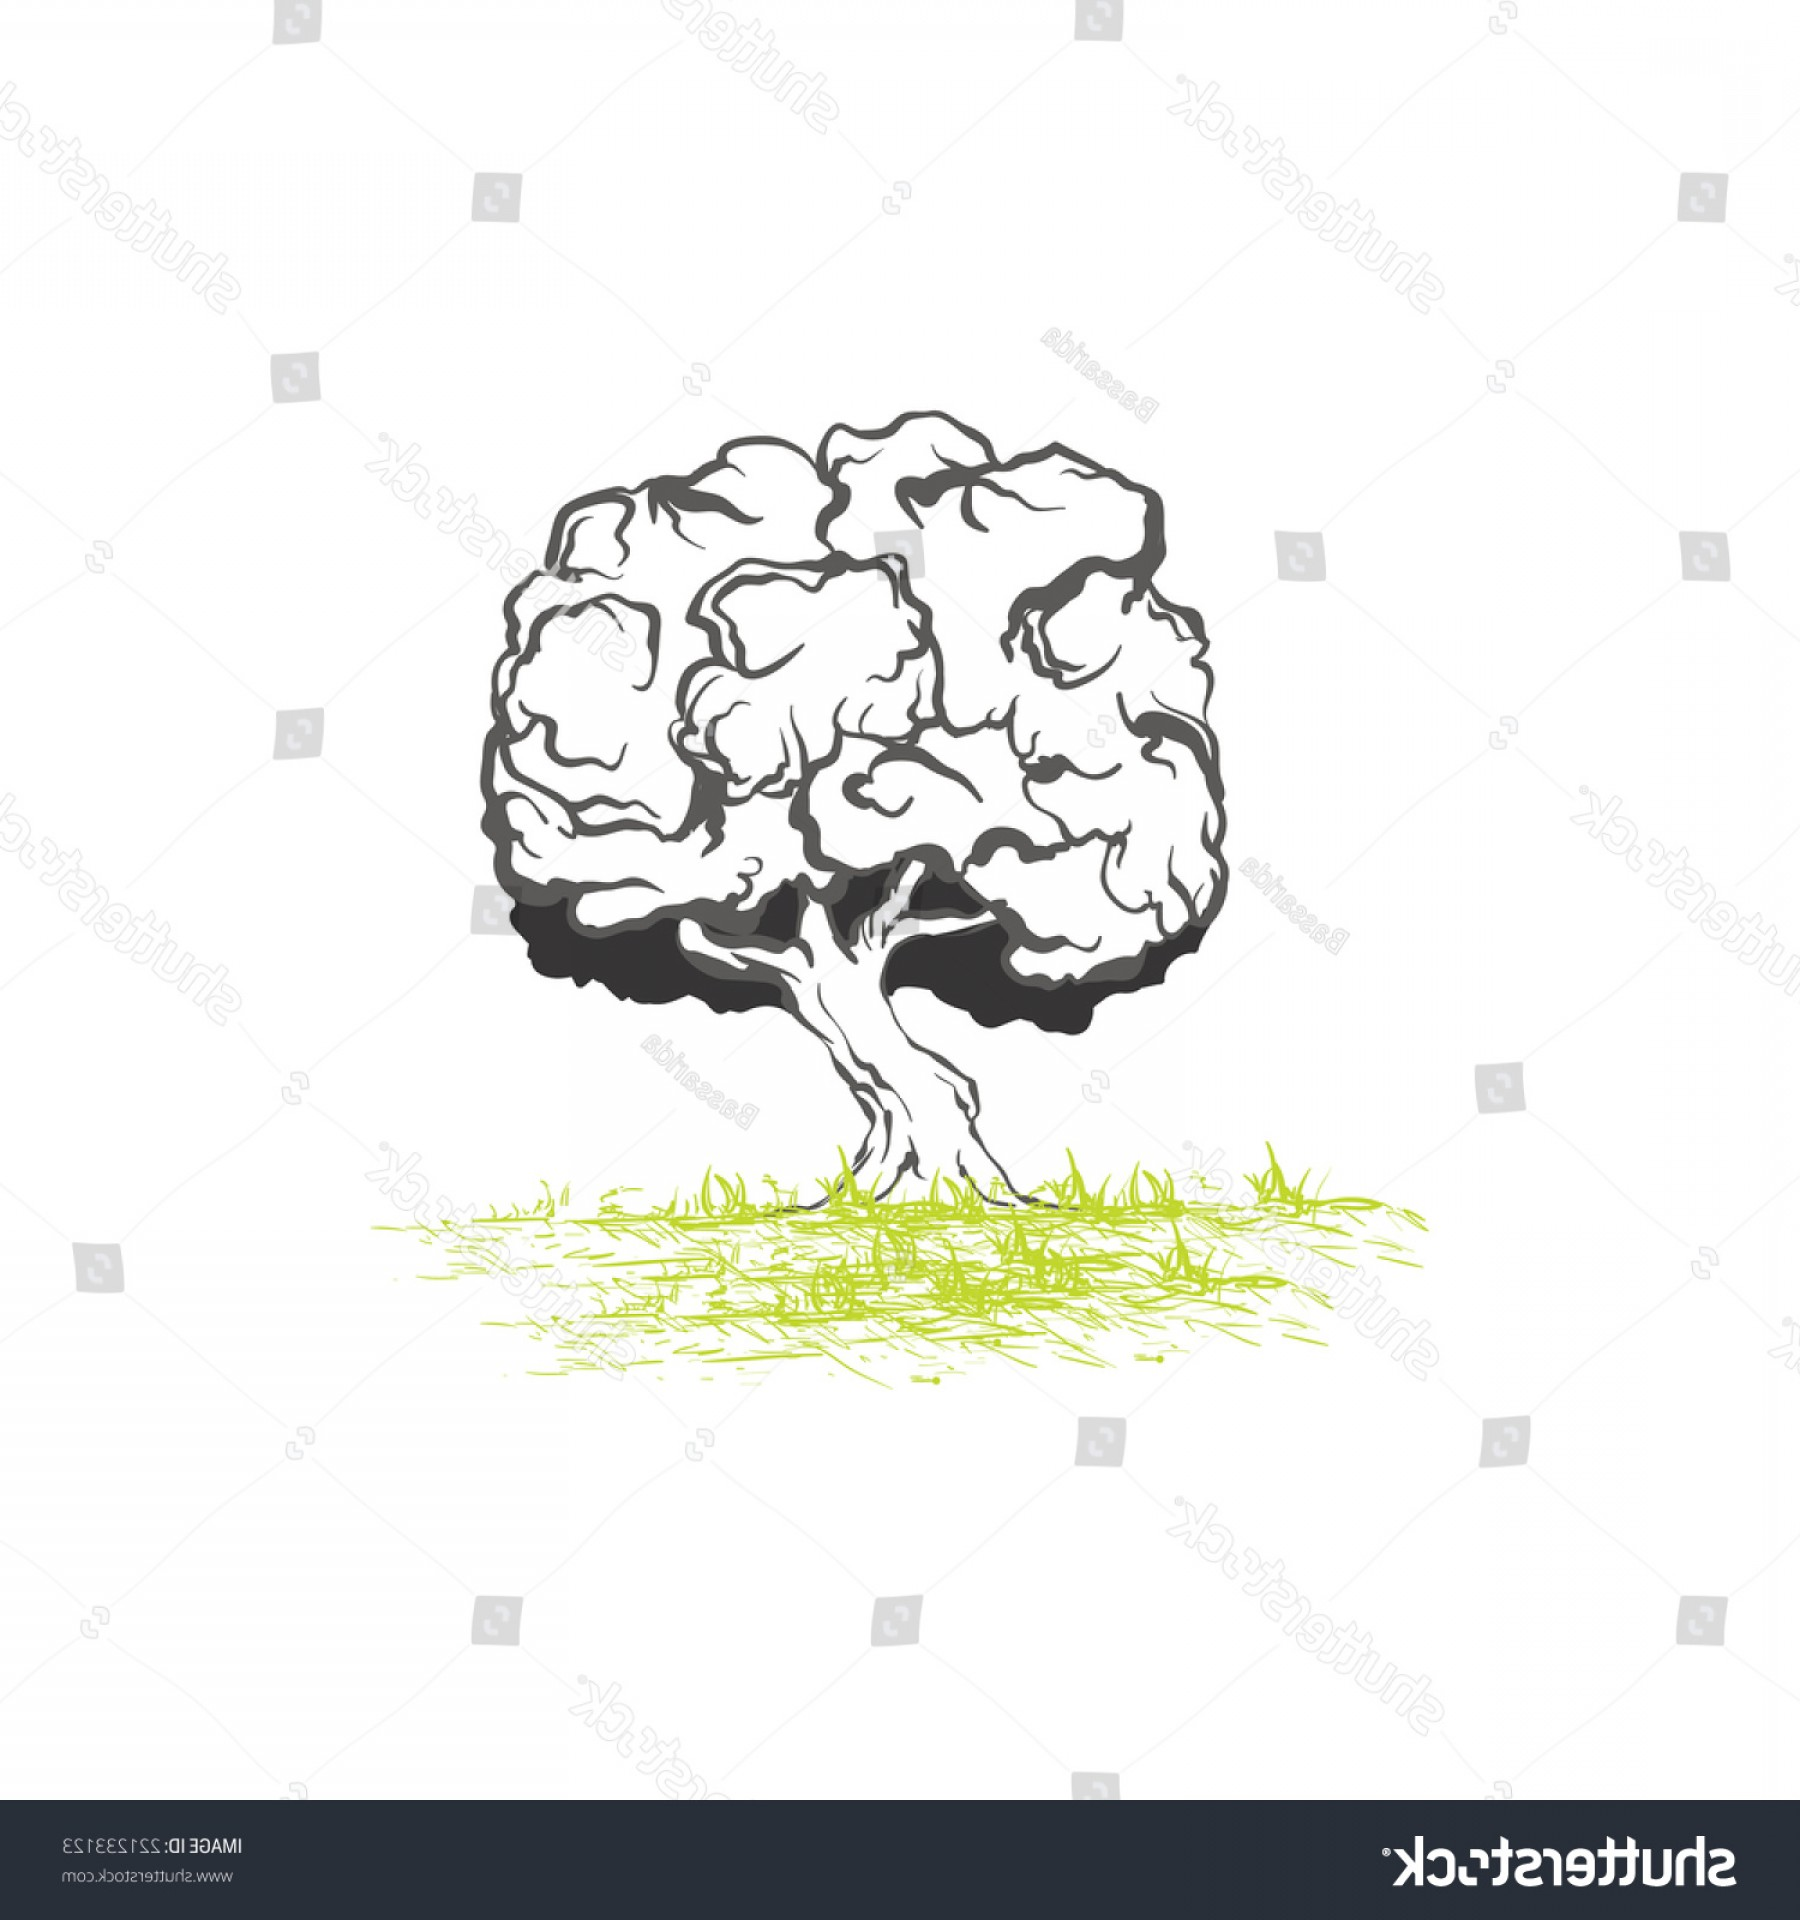 Oak Tree Silhouette Vector Graphics: Graphic Outline Oak Tree Silhouette